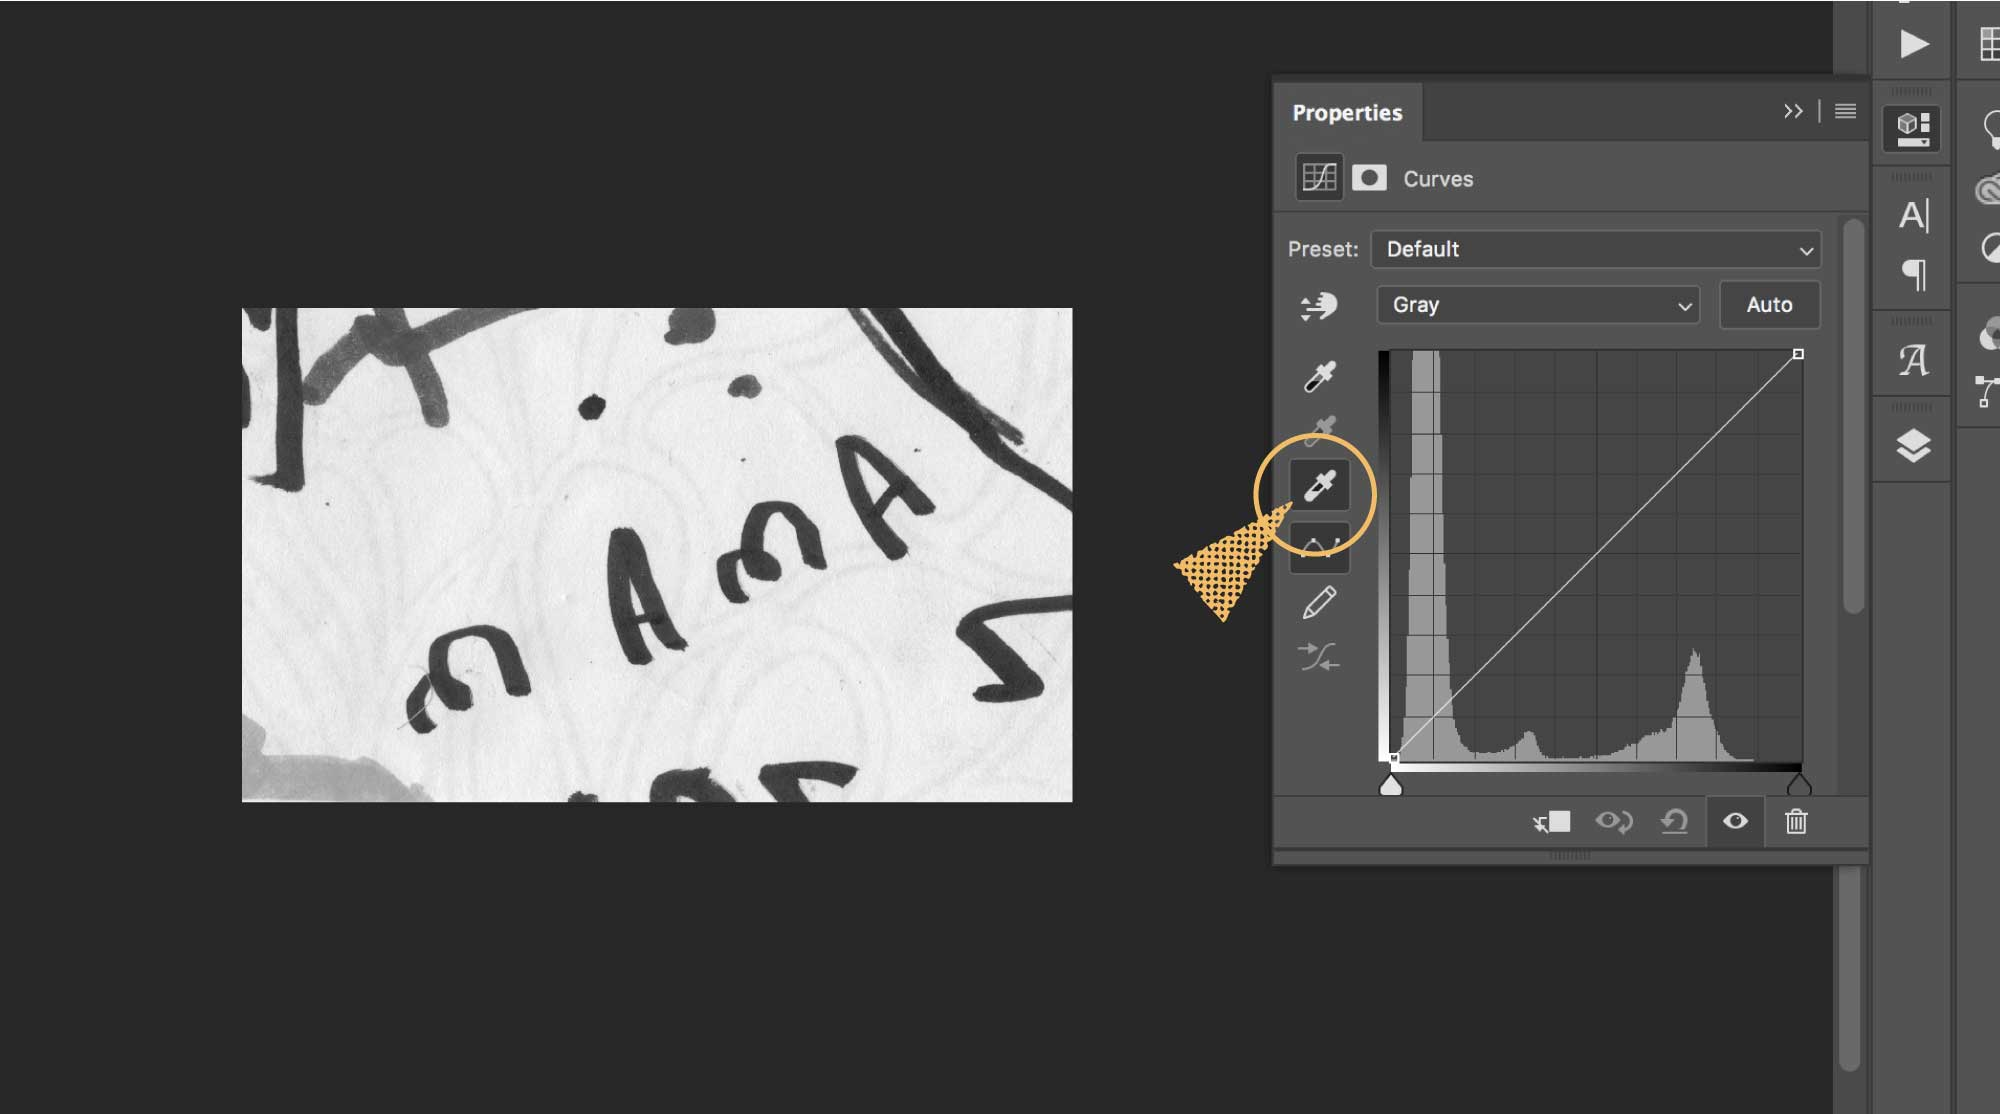 A screenshot of Photoshop and where to find the white eyedropper tool in the curves window